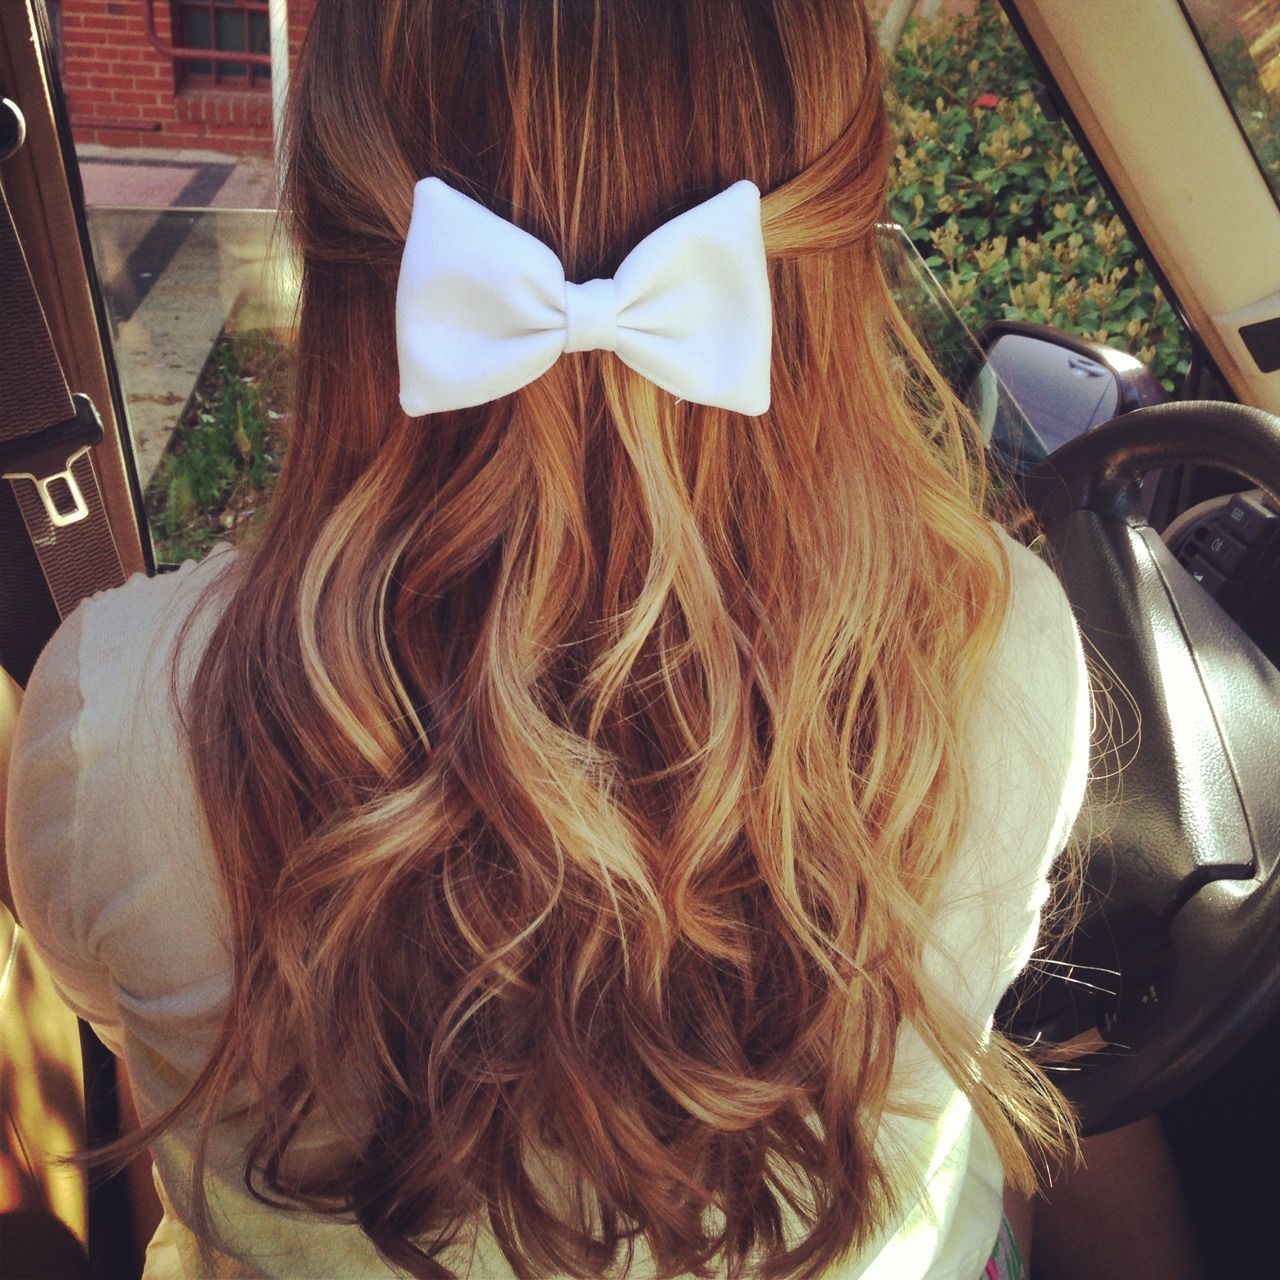 Pull a stand of hair from each side of head, attach together with a bow! Super…